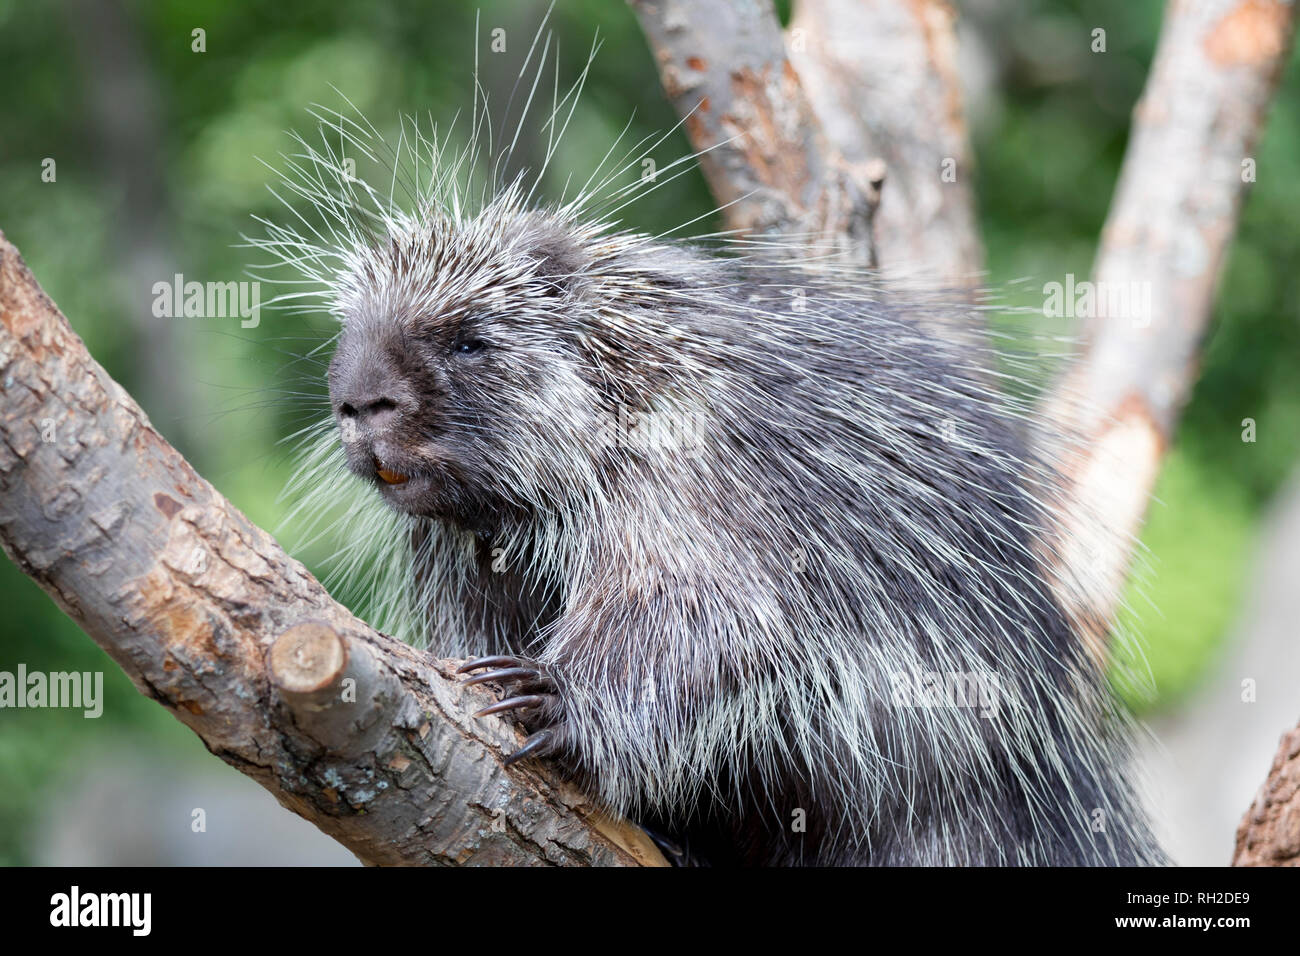 North American Porcupine (Erethizon Dorsatum) standing in a tree, also known as the Canadian Porcupine or common porcupine Stock Photo